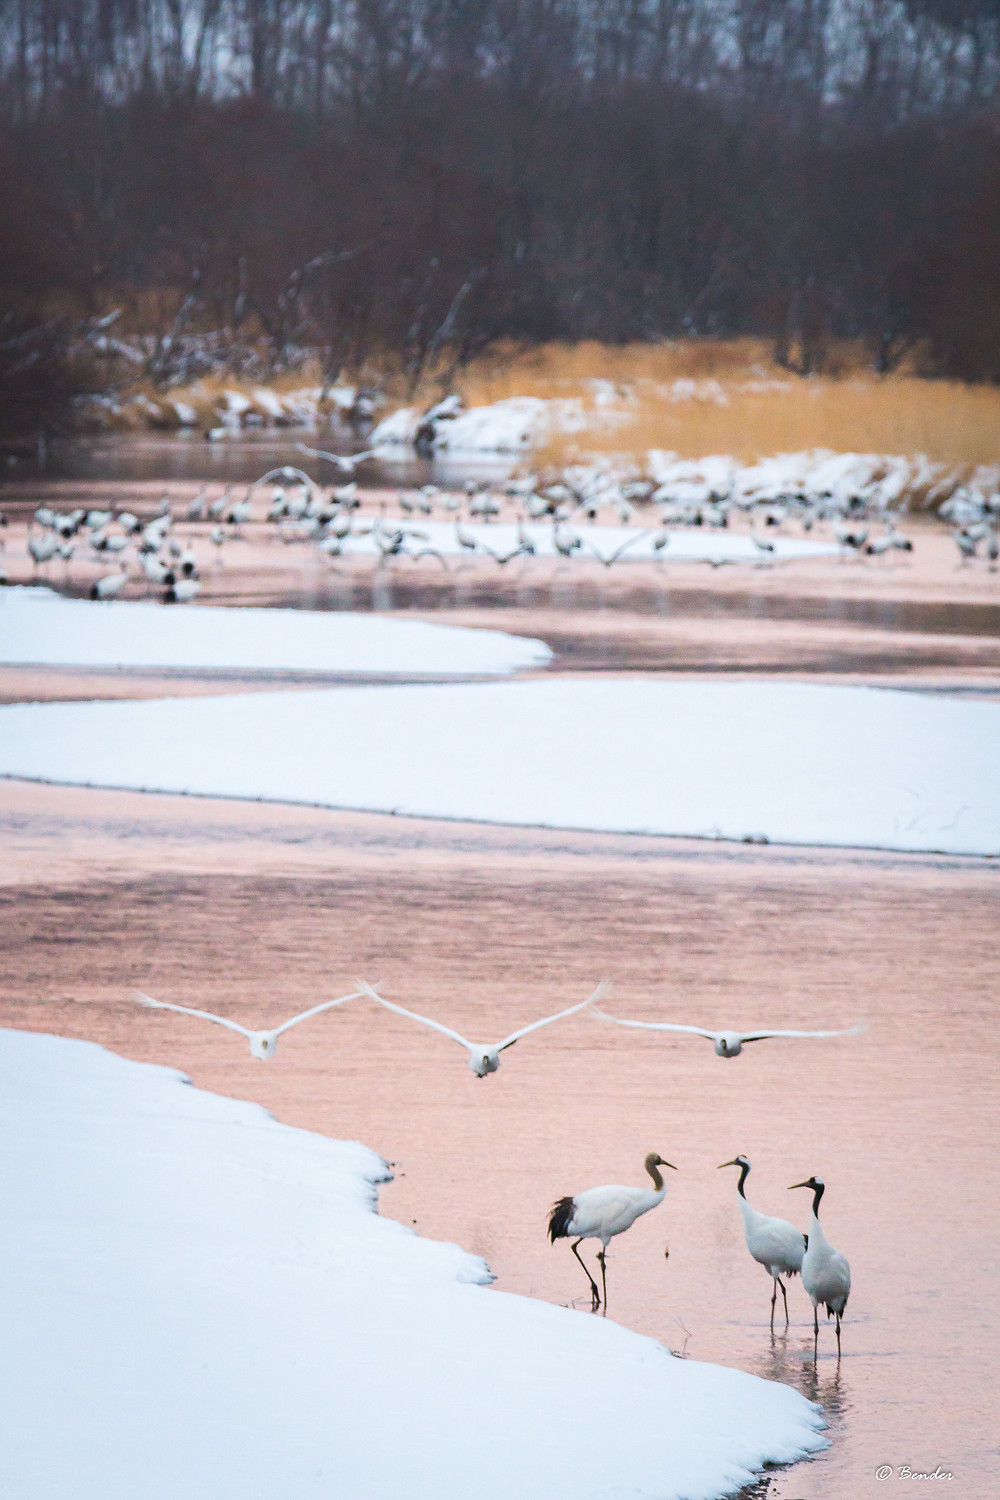 Cranes gathers in river with some taking flight